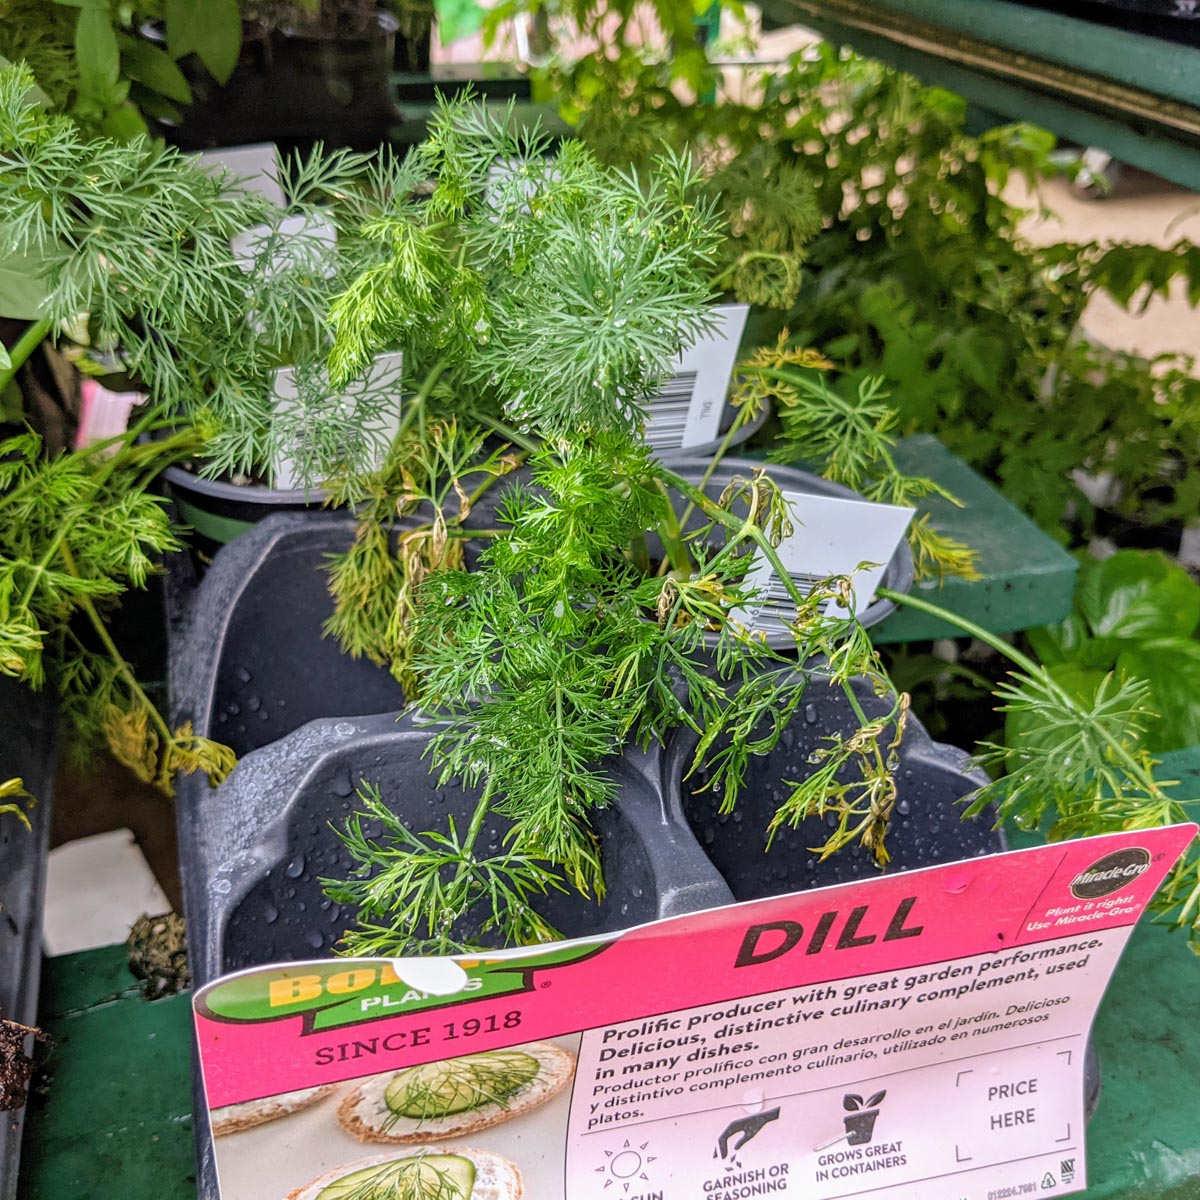 Dill Plant at Lowes in July 2021 for Dill Substitute post